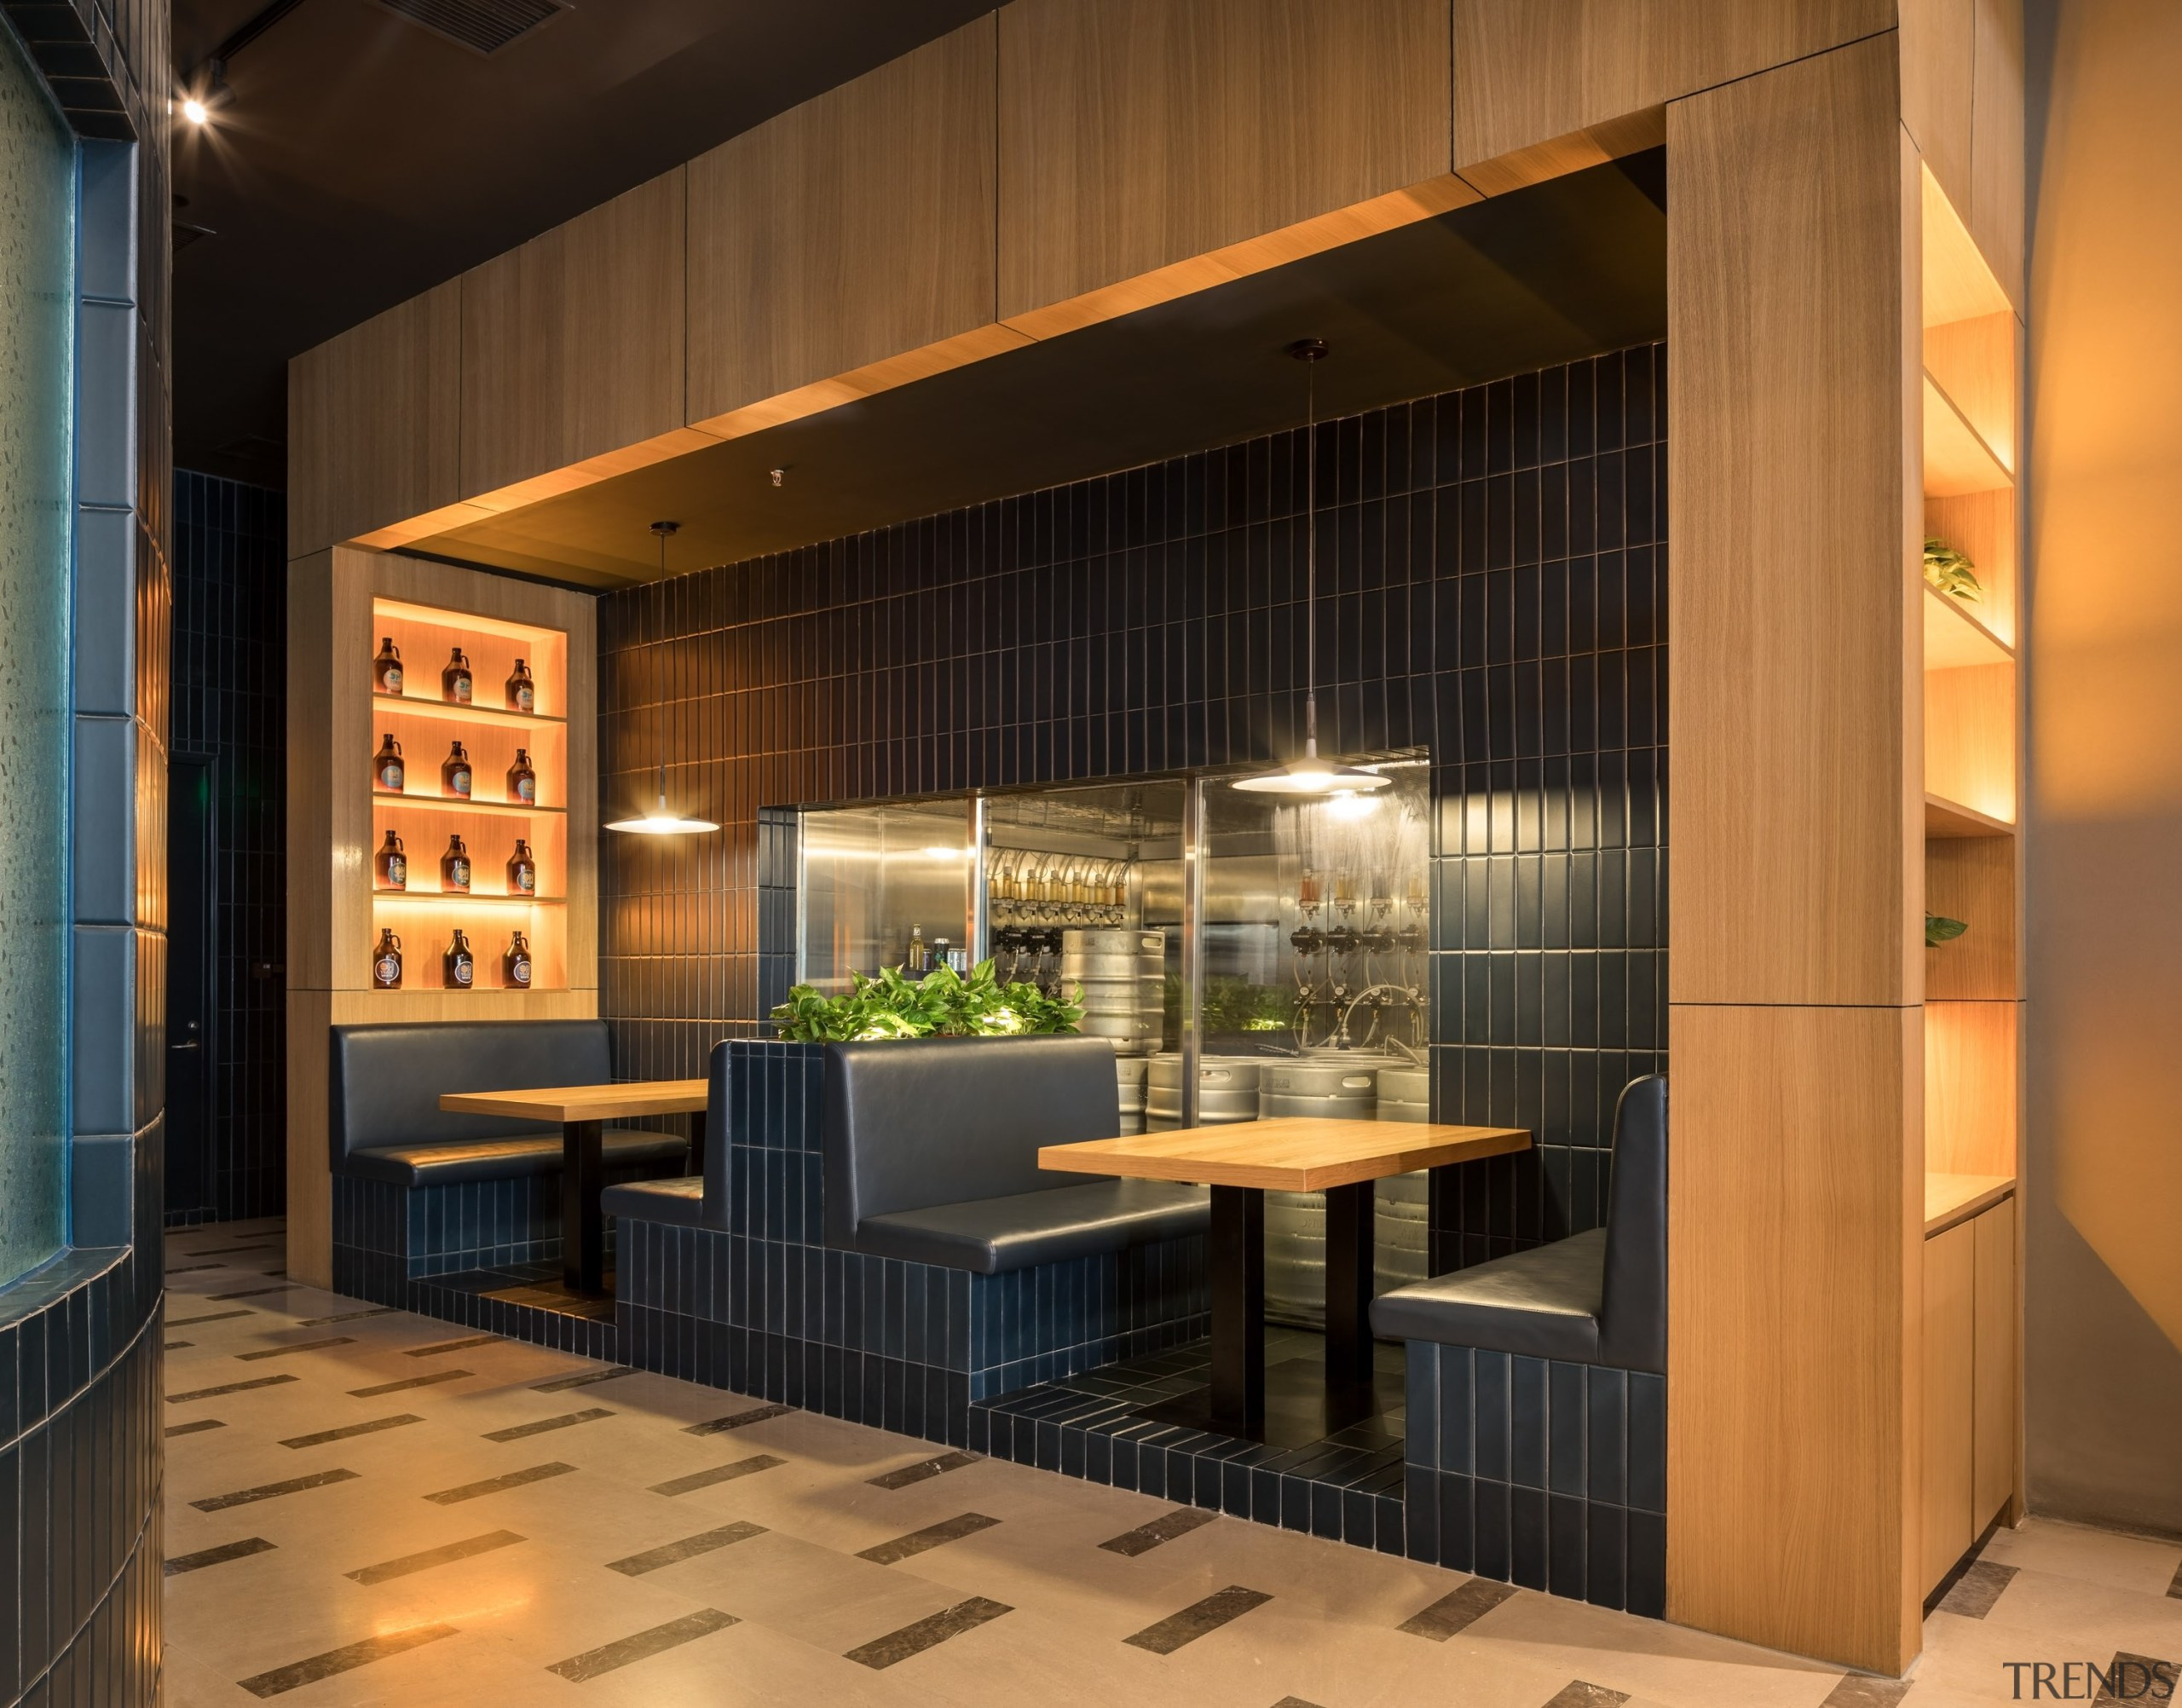 Intimate booths are part of the Oh Yeah architecture, building, cabinetry, ceiling, design, door, facade, floor, flooring, furniture, home, house, interior design, lighting, lobby, property, real estate, room, tile, wall, black, brown, orange